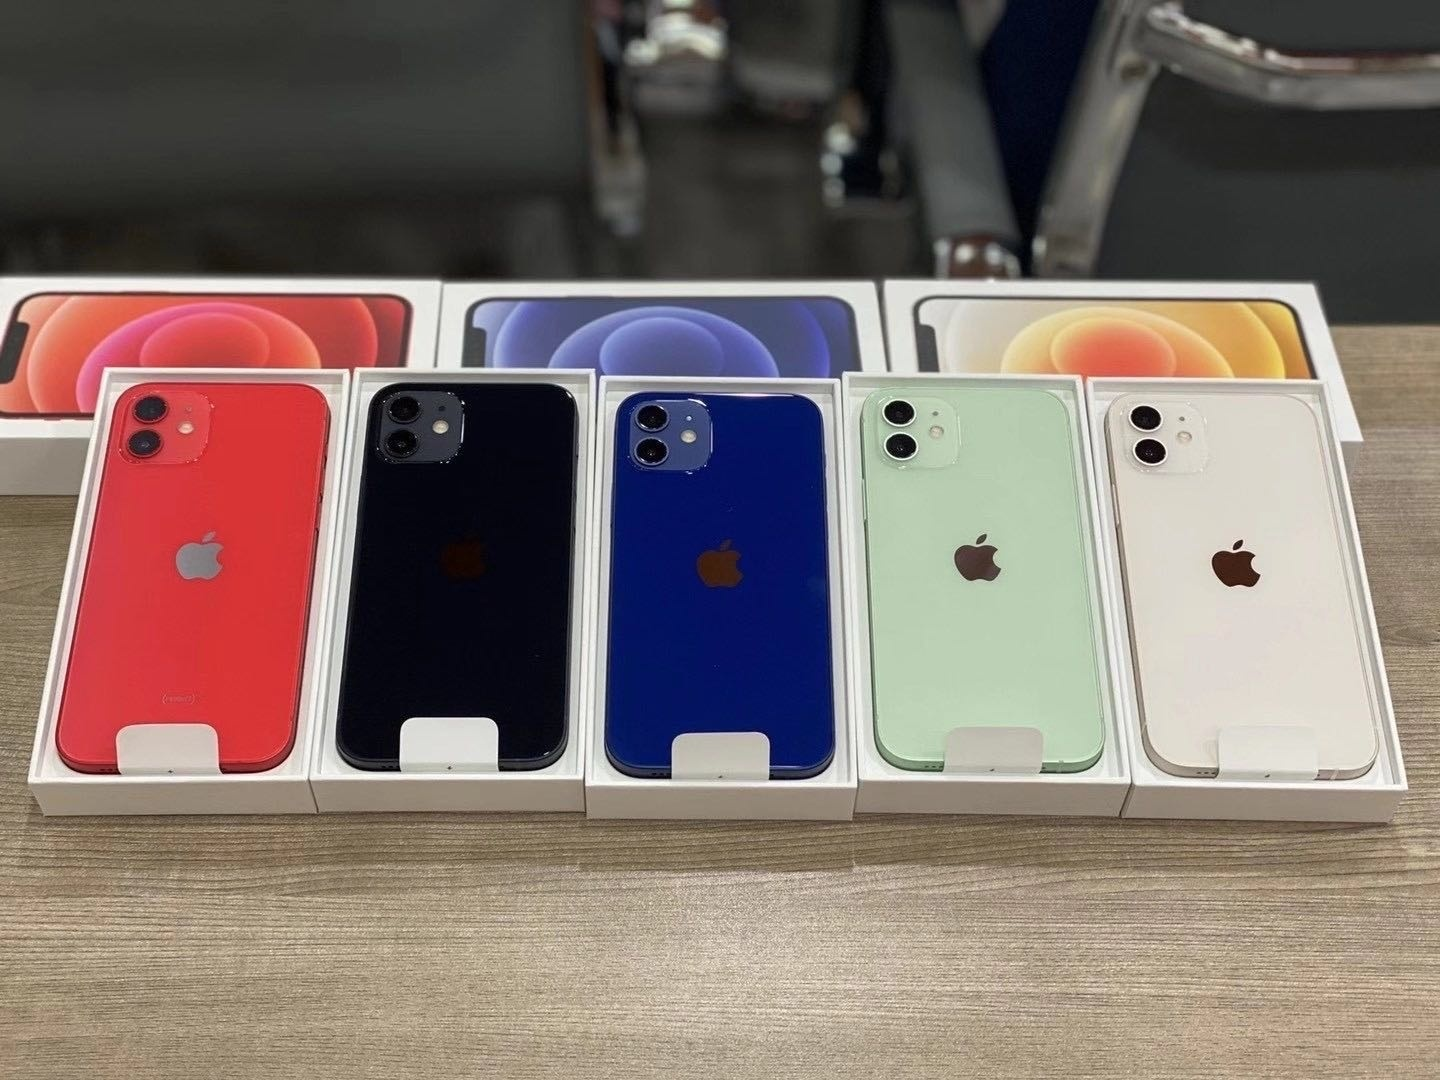 Apple iPhone 12 Pro, iPhone 12 Pro Max, iPhone 12, Sony PlayStation PS5